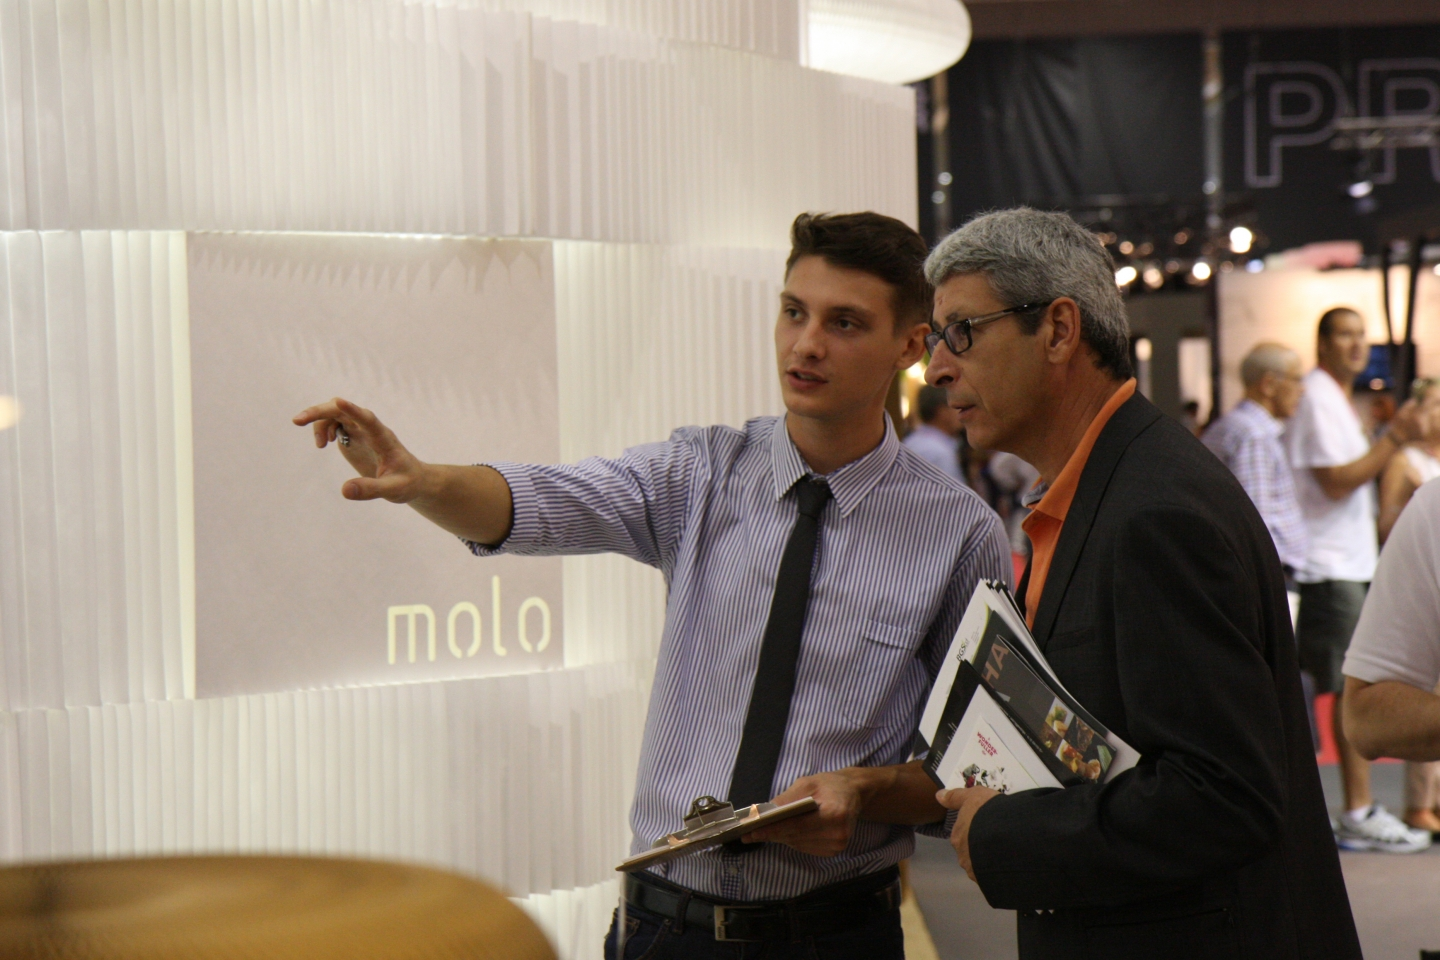 a molo employee educates a guest on the flexible honeycomb used for the soft collection.